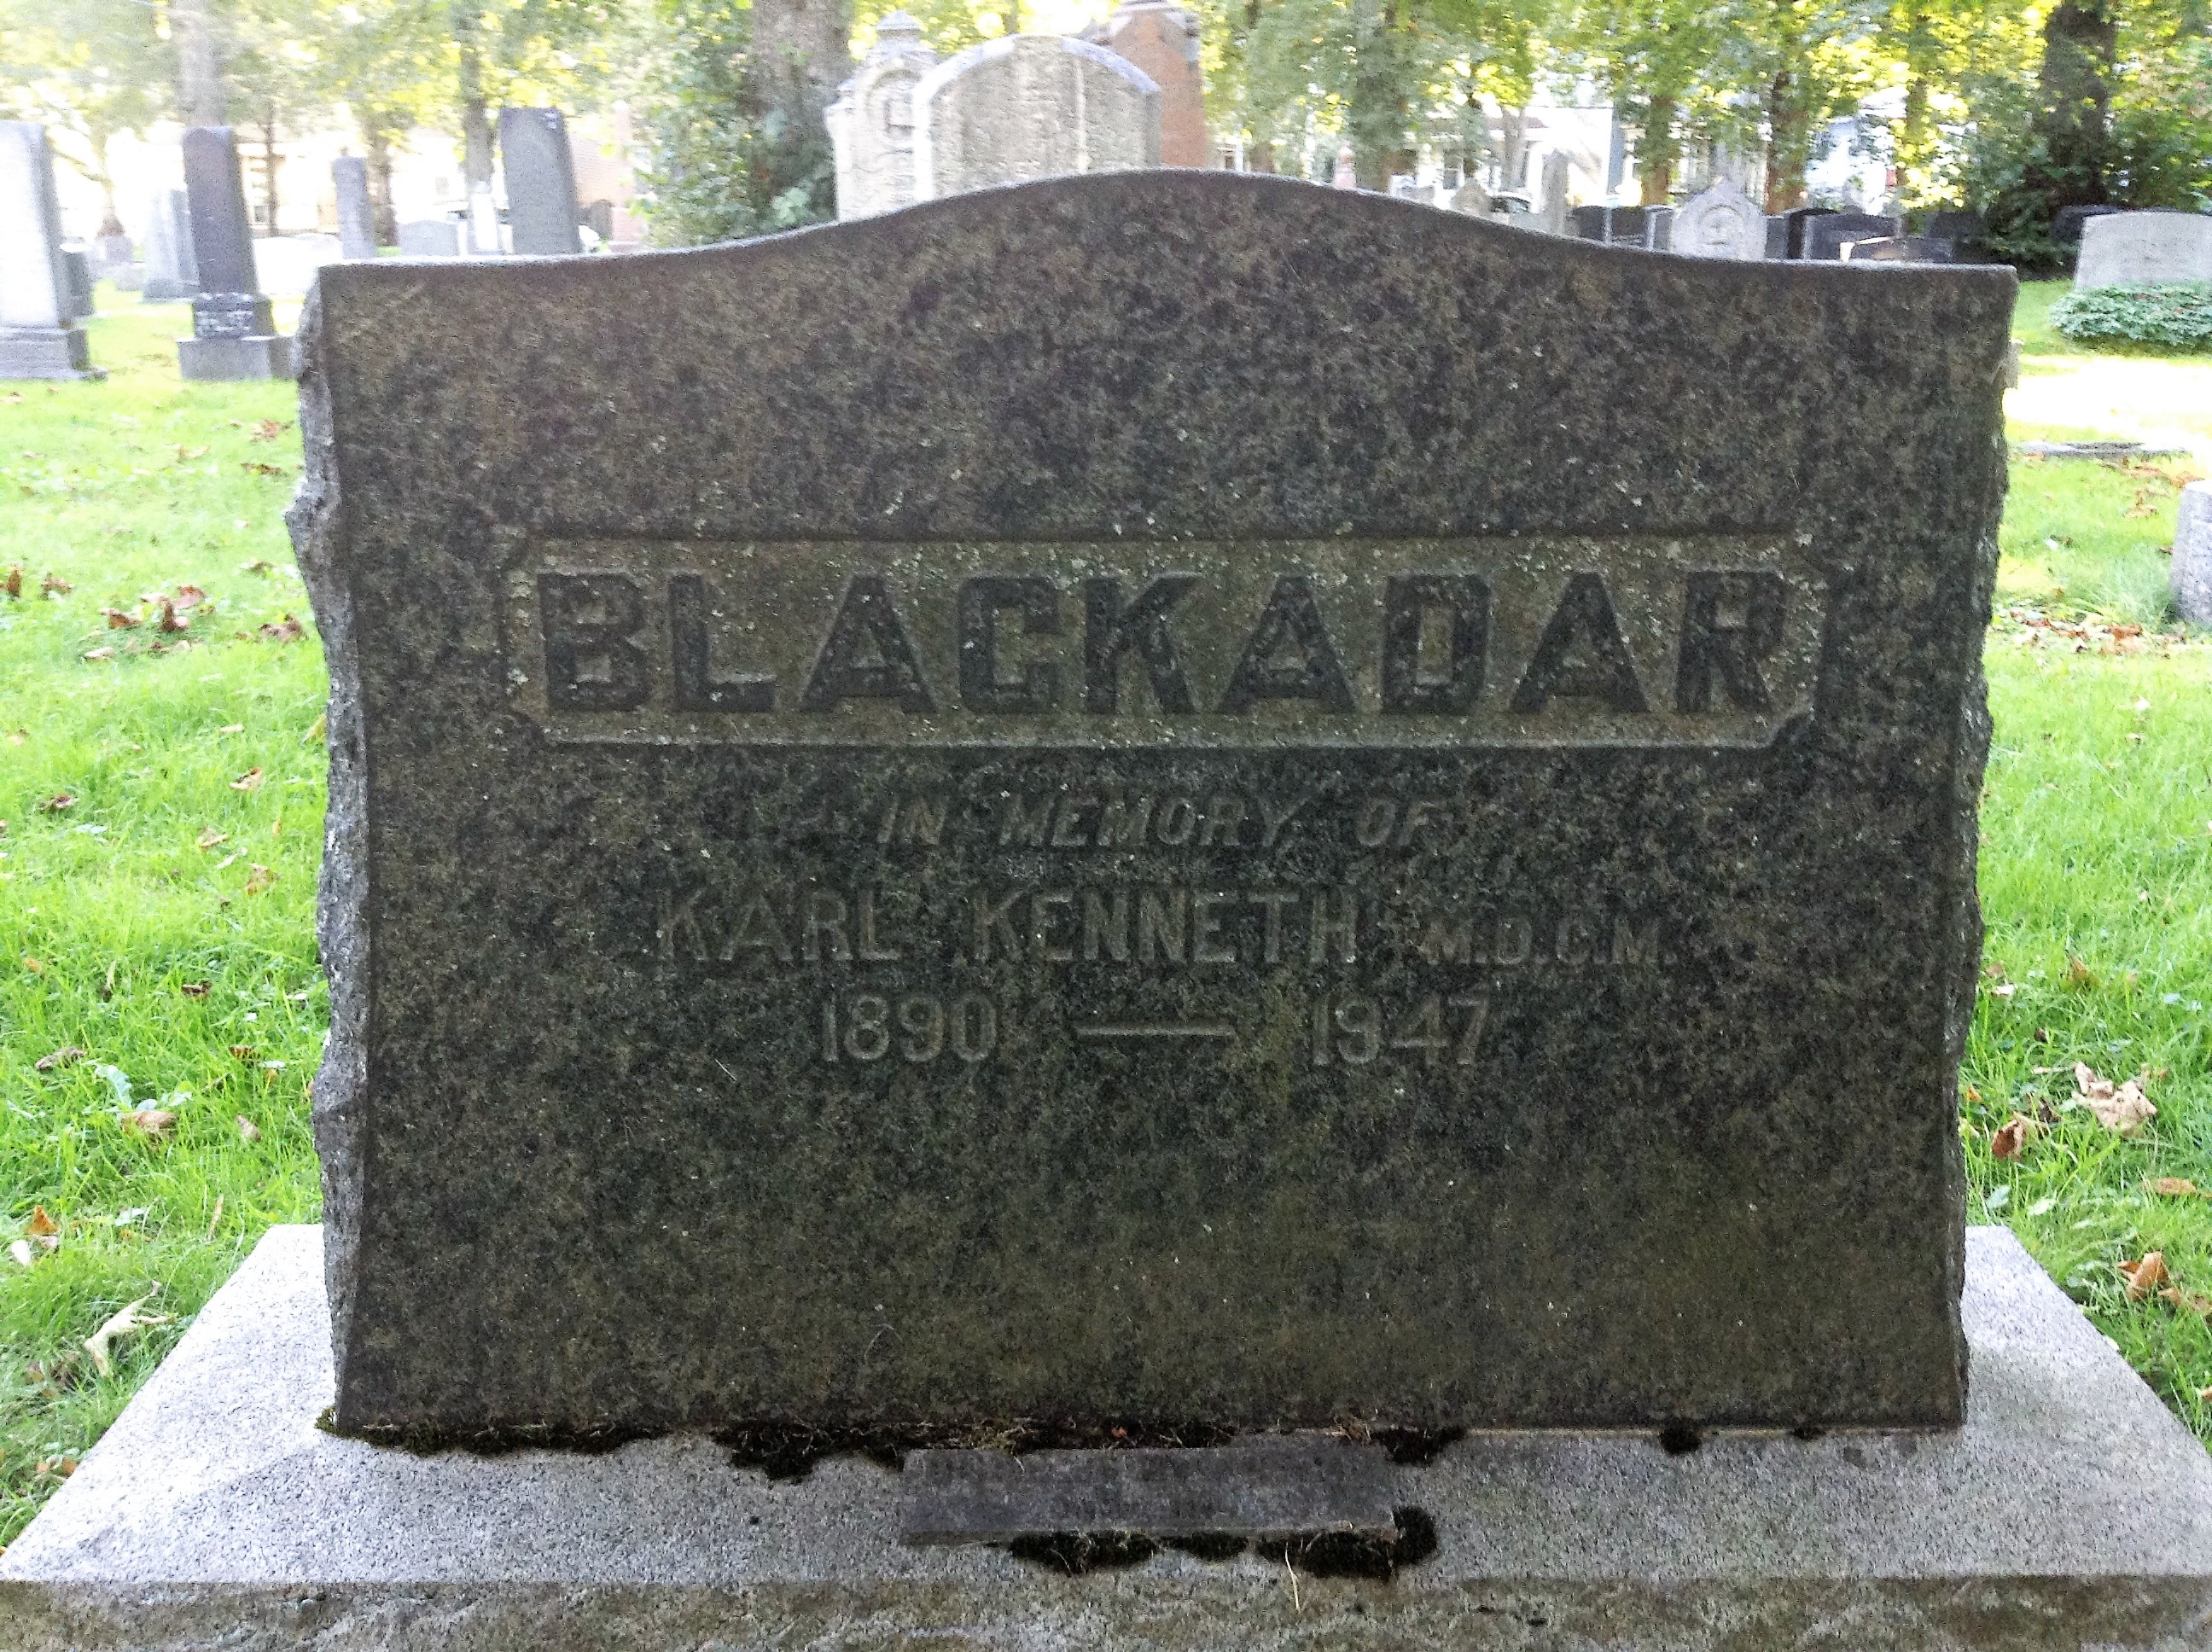 Grave Marker– Grave marker for Karl Kenneth Blackadar at Camp Hill Cemetery in Halifax, Nova Scotia. Image taken 16 October 2017 by Tom Tulloch. Note: this grave marker is actually located in Camp Hill Cemetery Section SS.